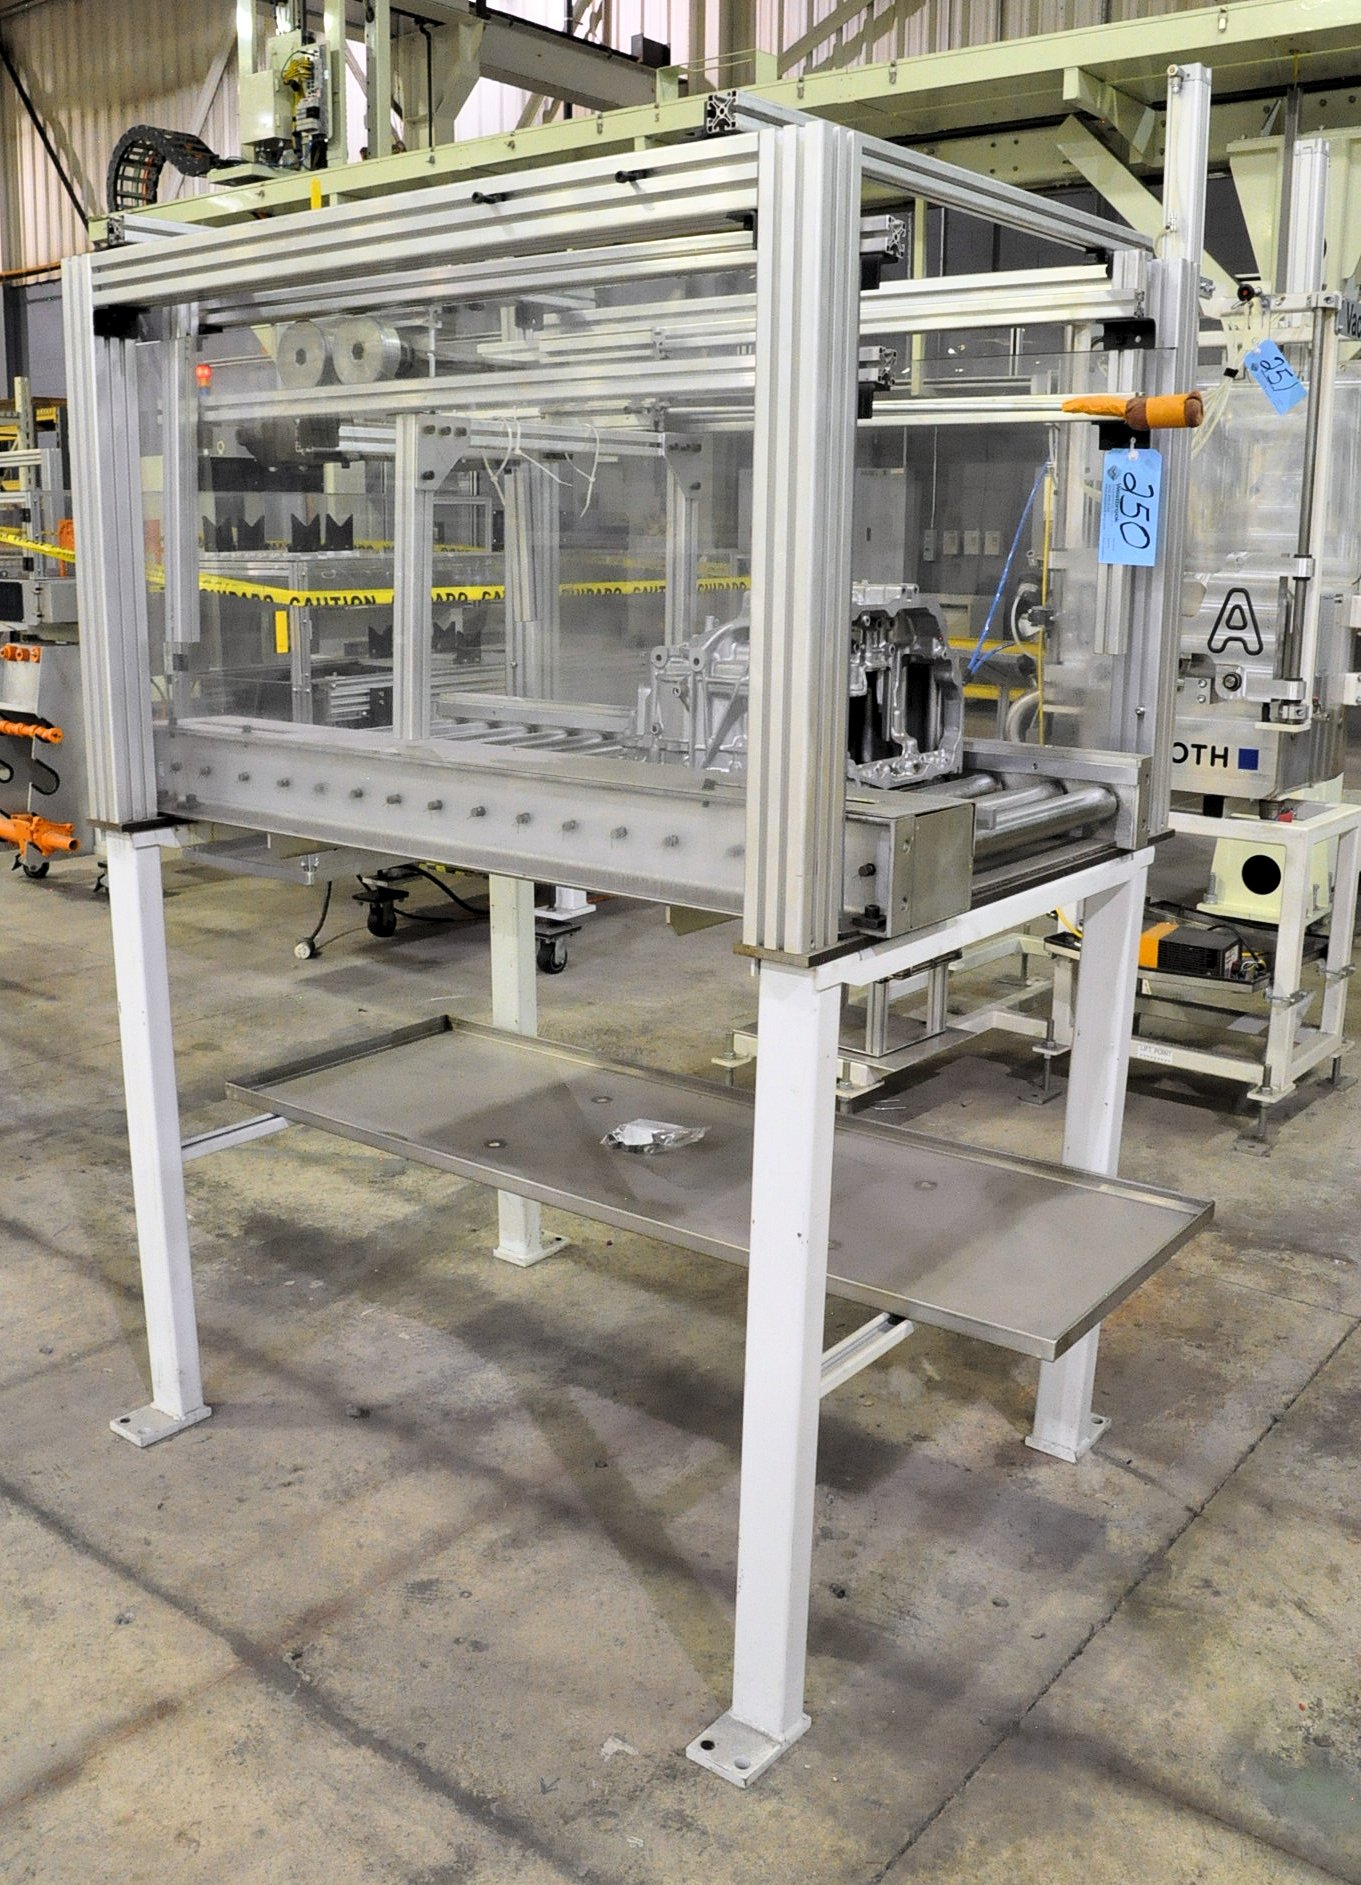 1.5 Meter Long Direct Drive Roller Conveyor with Pneumatic Blow-Off